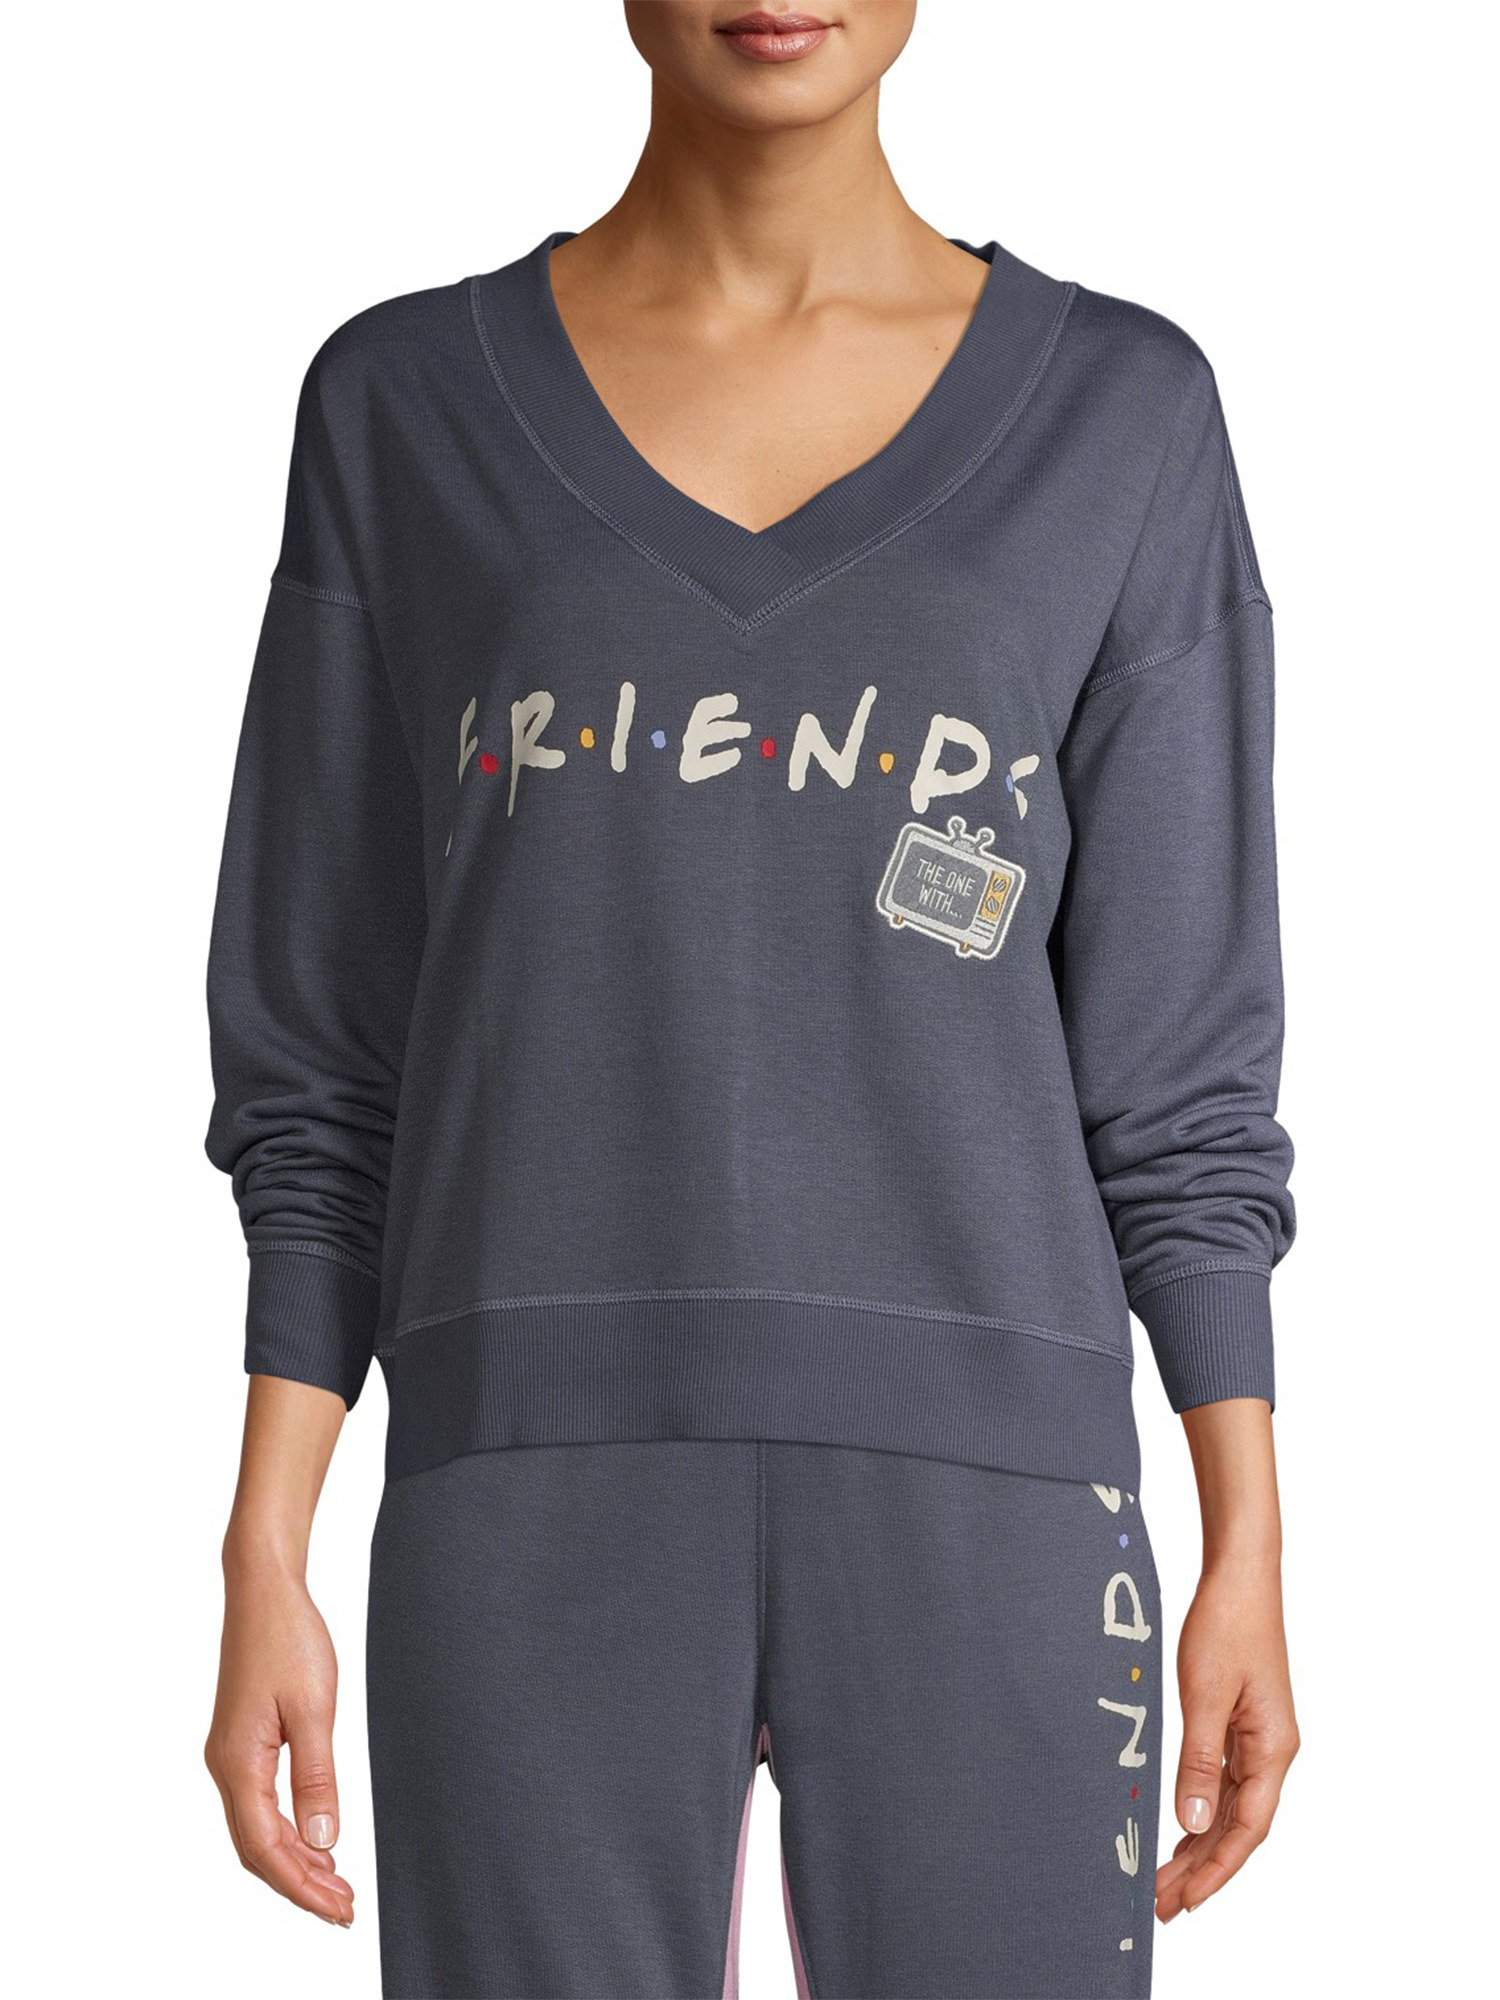 a navy blue long sleeve top with the friends tv show logo on it